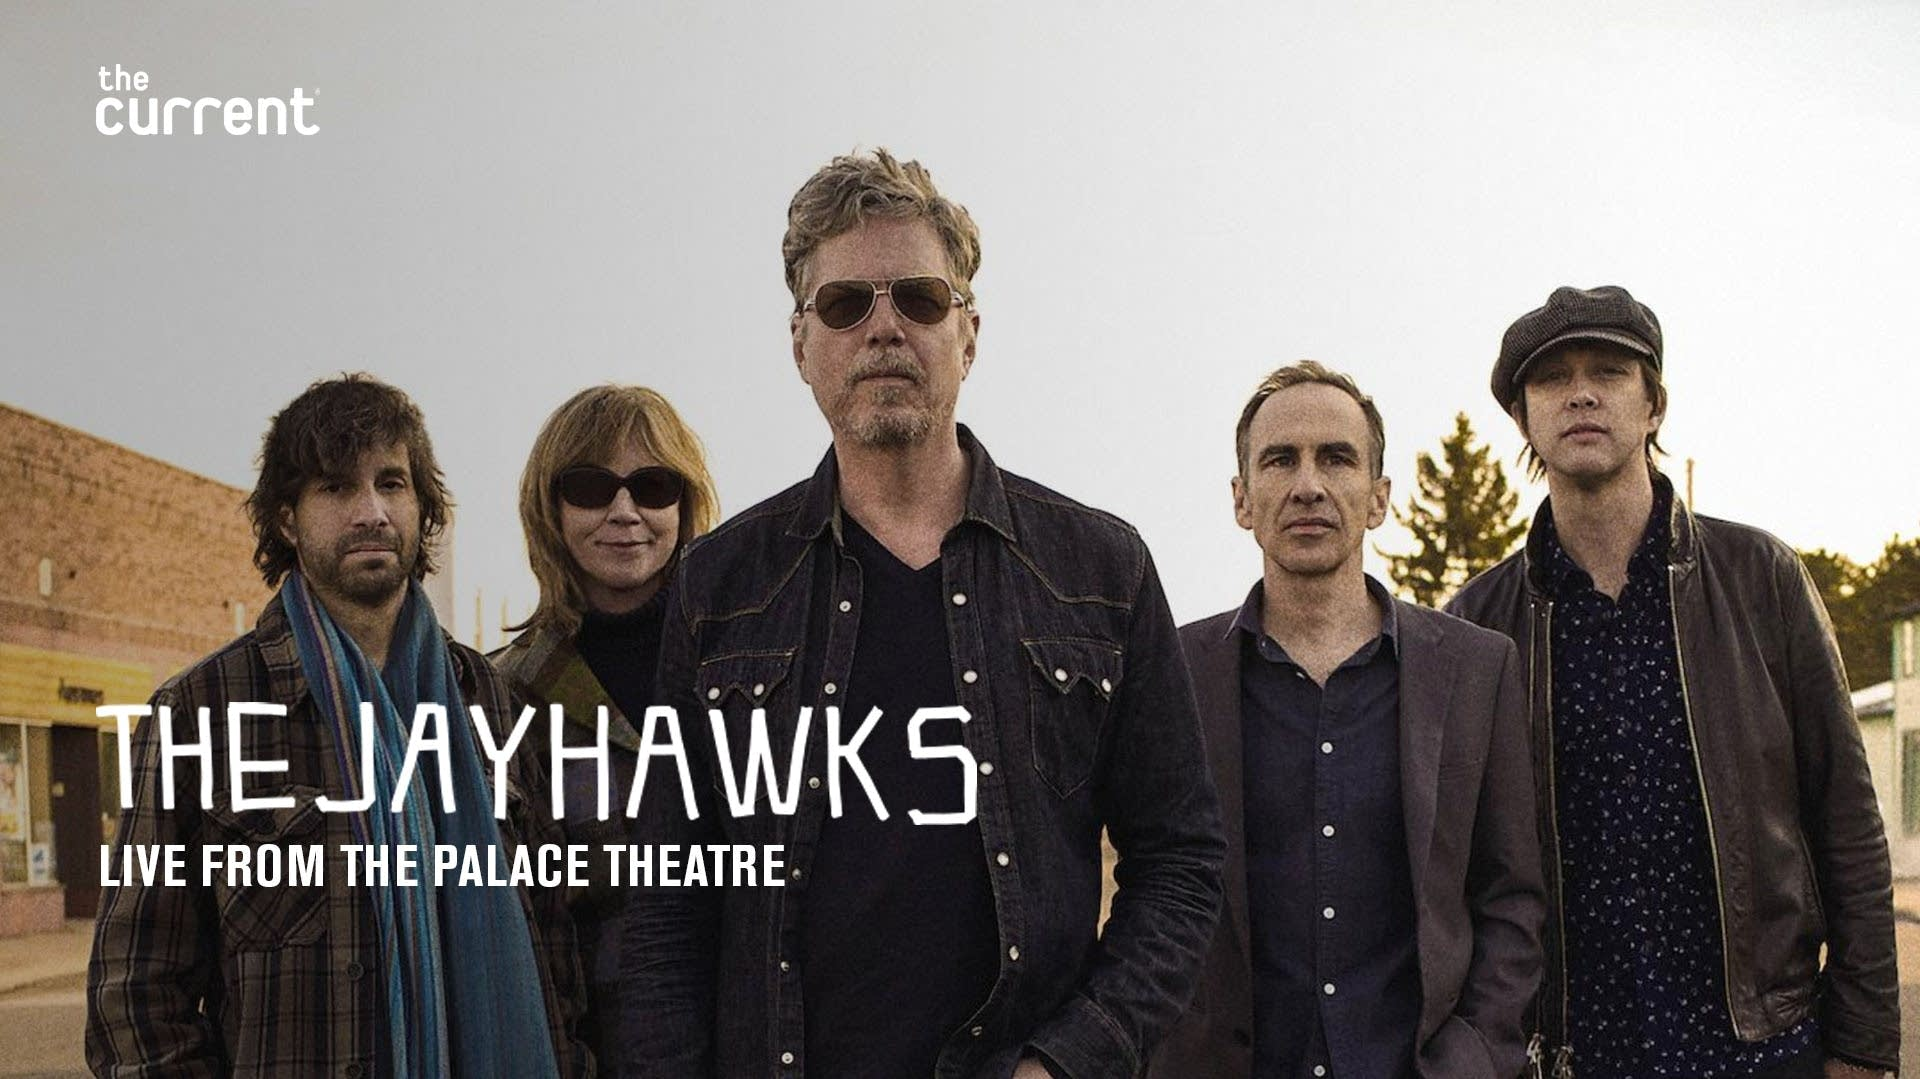 The Jayhawks live concert video